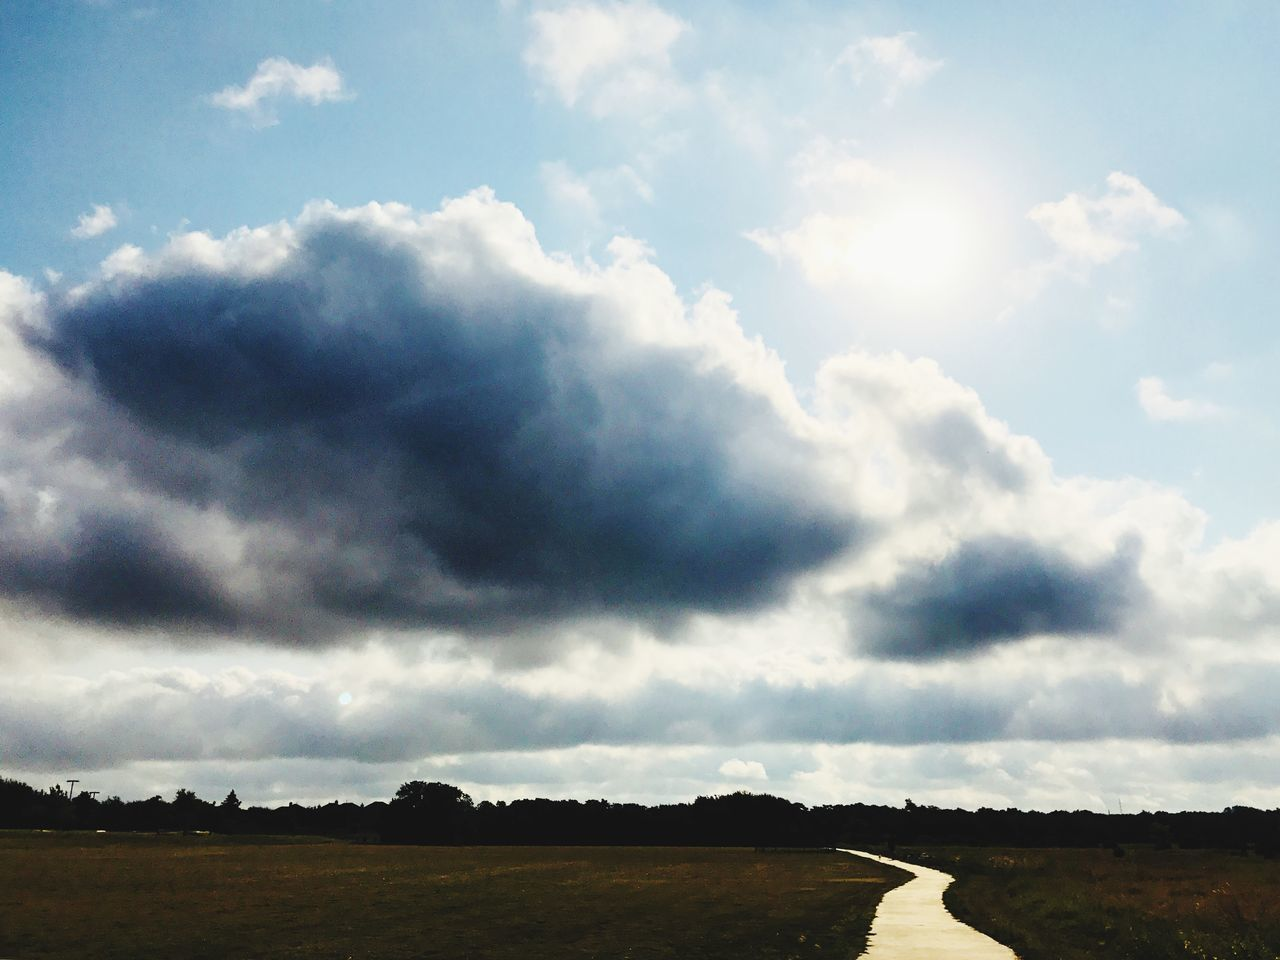 cloud - sky, sky, tranquility, nature, beauty in nature, day, scenics, outdoors, no people, landscape, tree